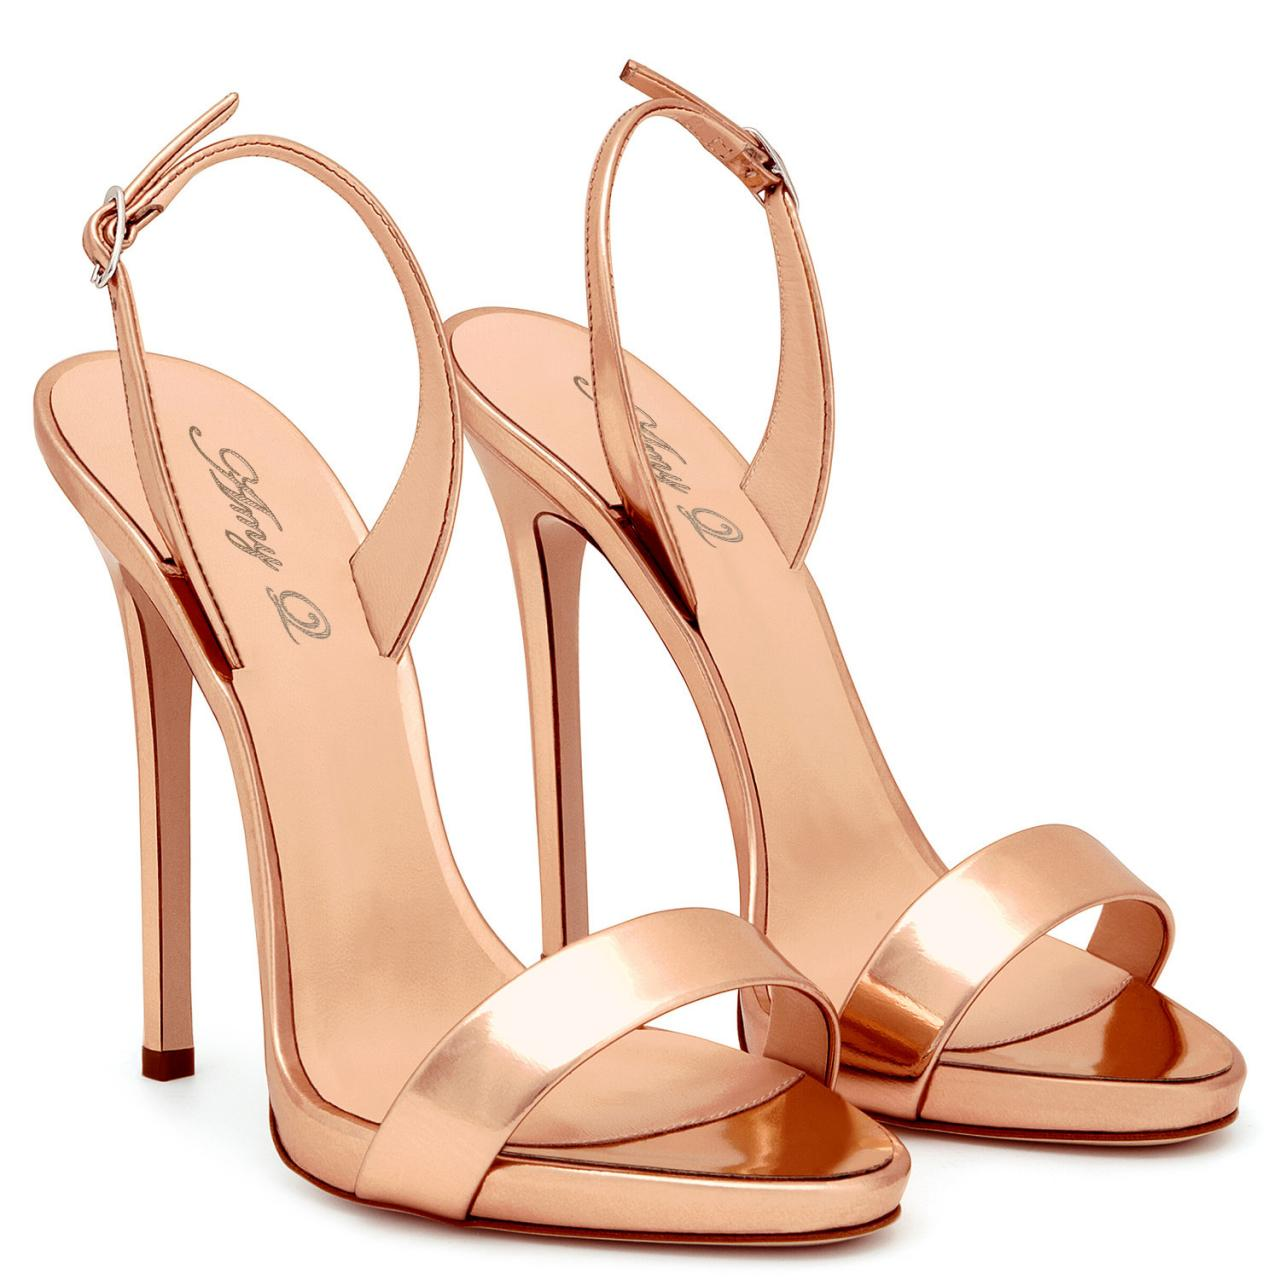 Women's stiletto sandals high heel Sandals